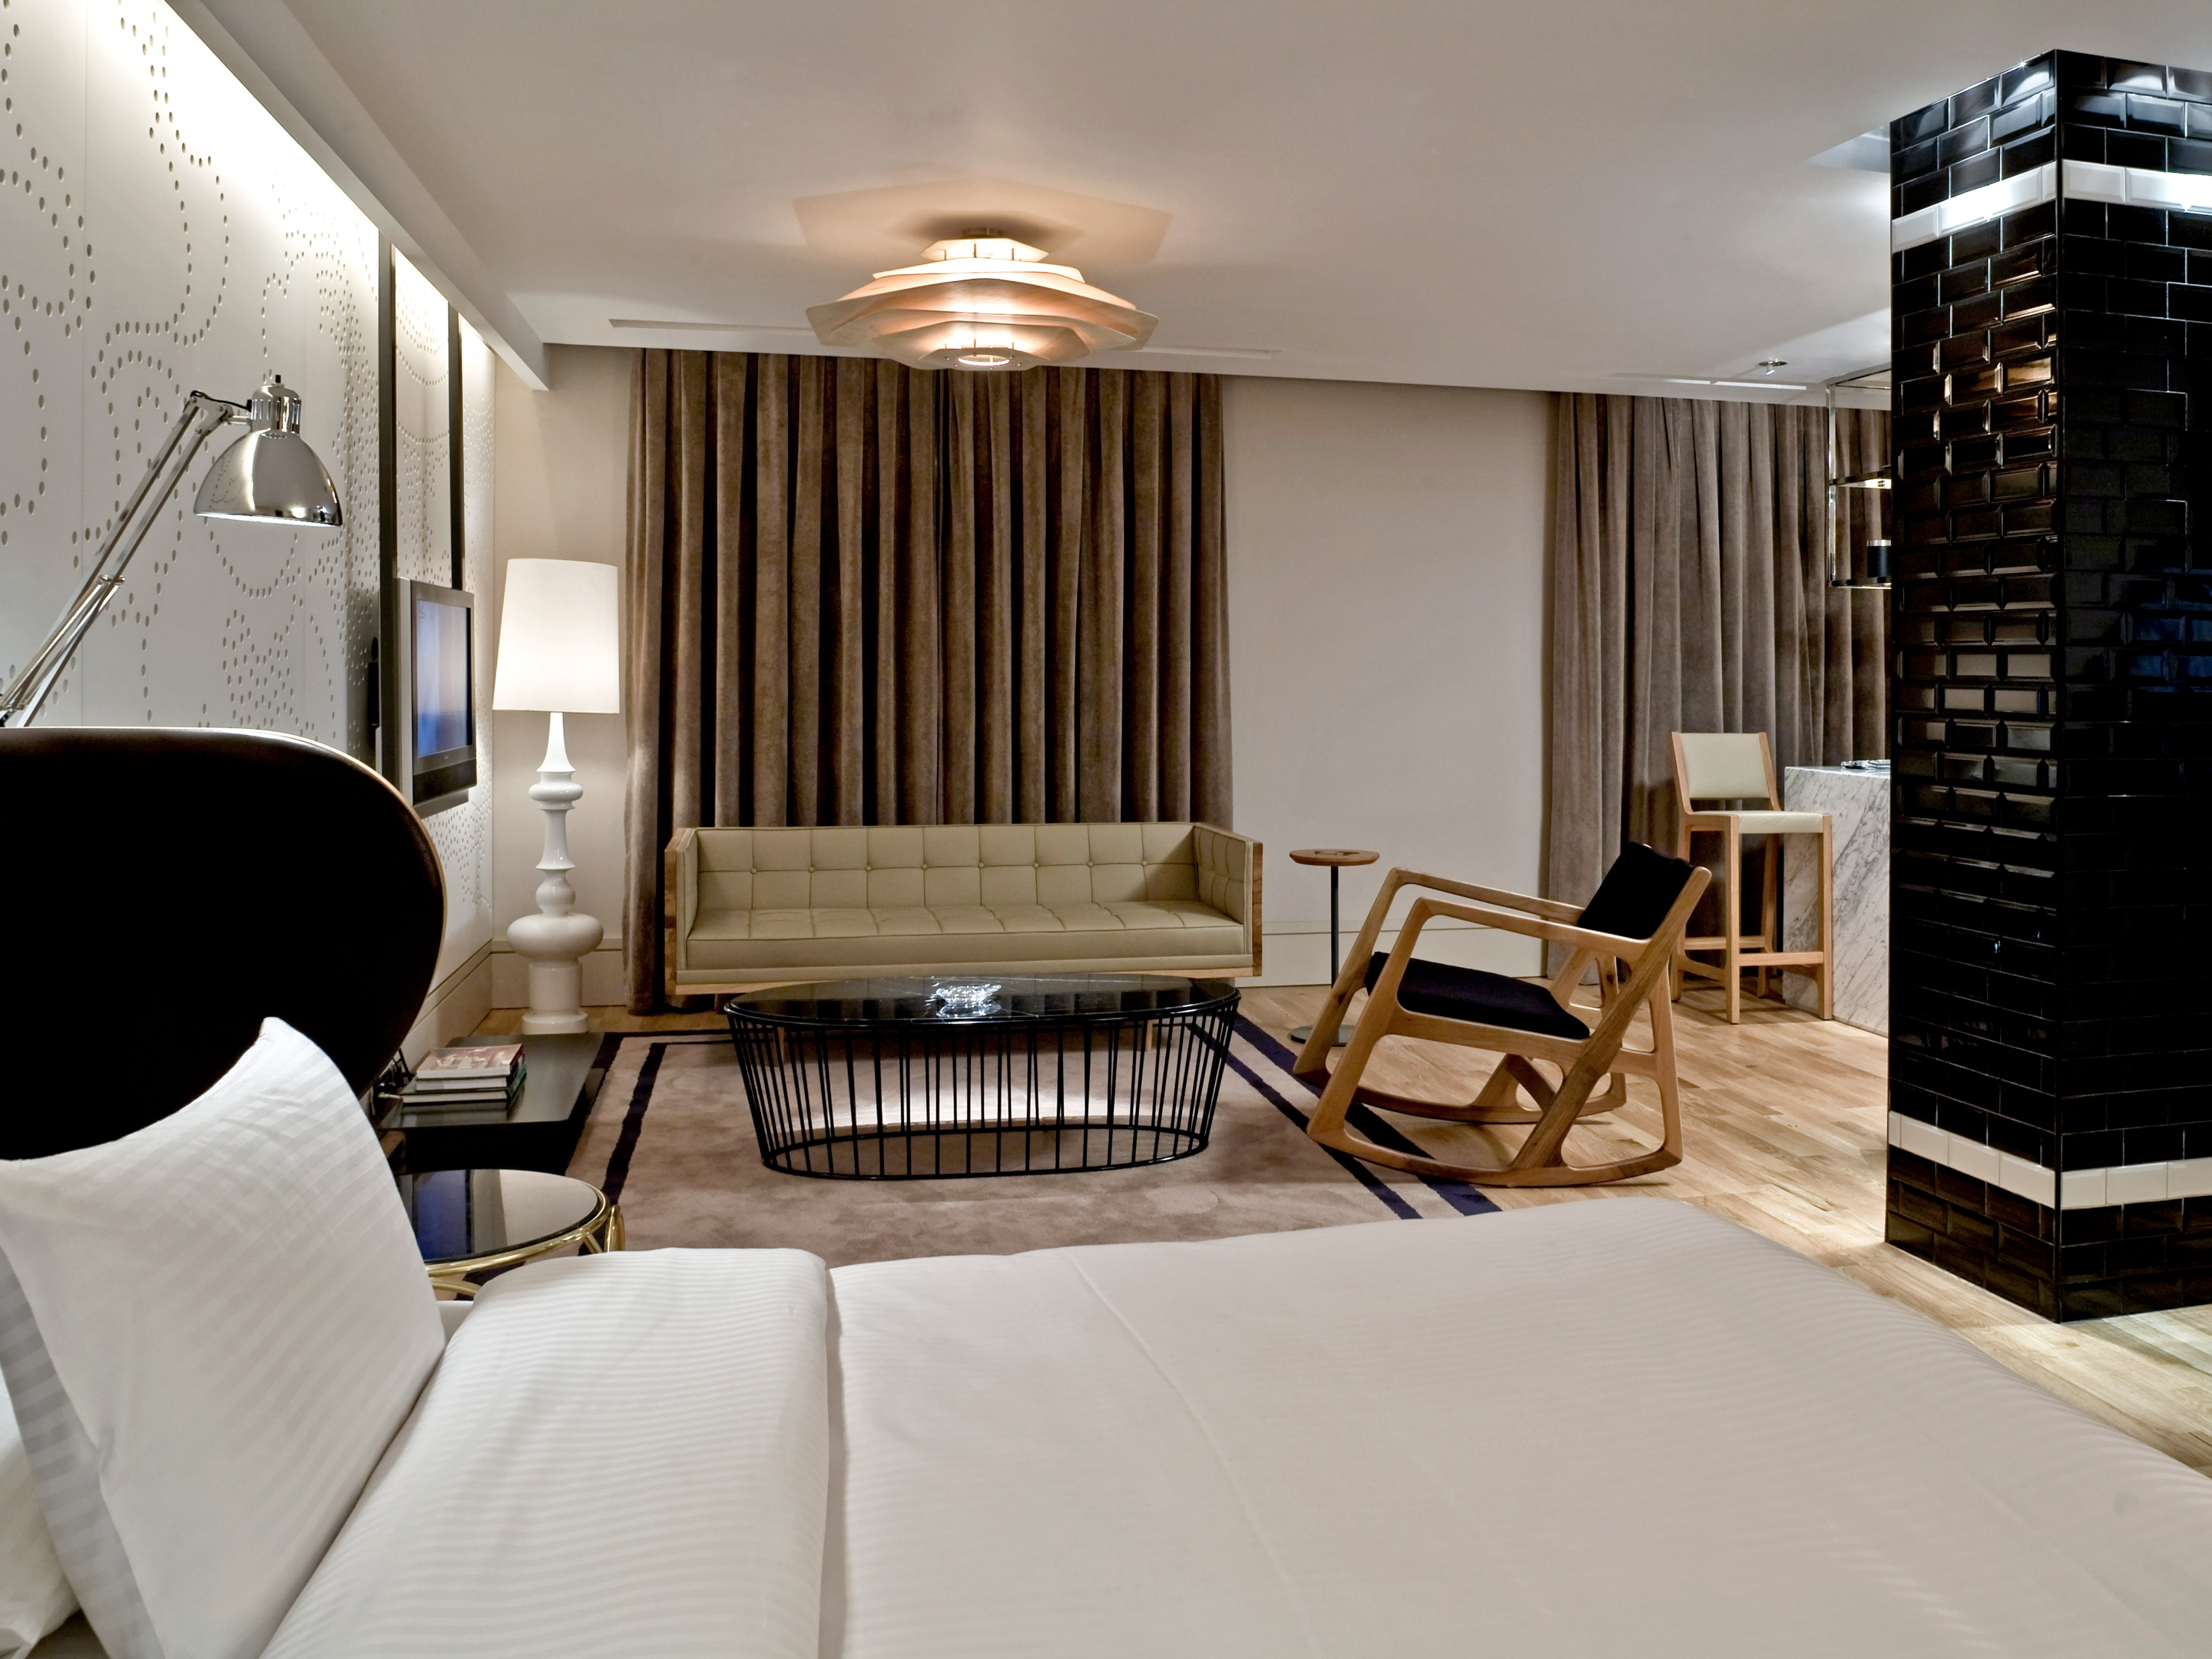 10 witt istanbul hotel best luxury hotels in istanbul top 10 source